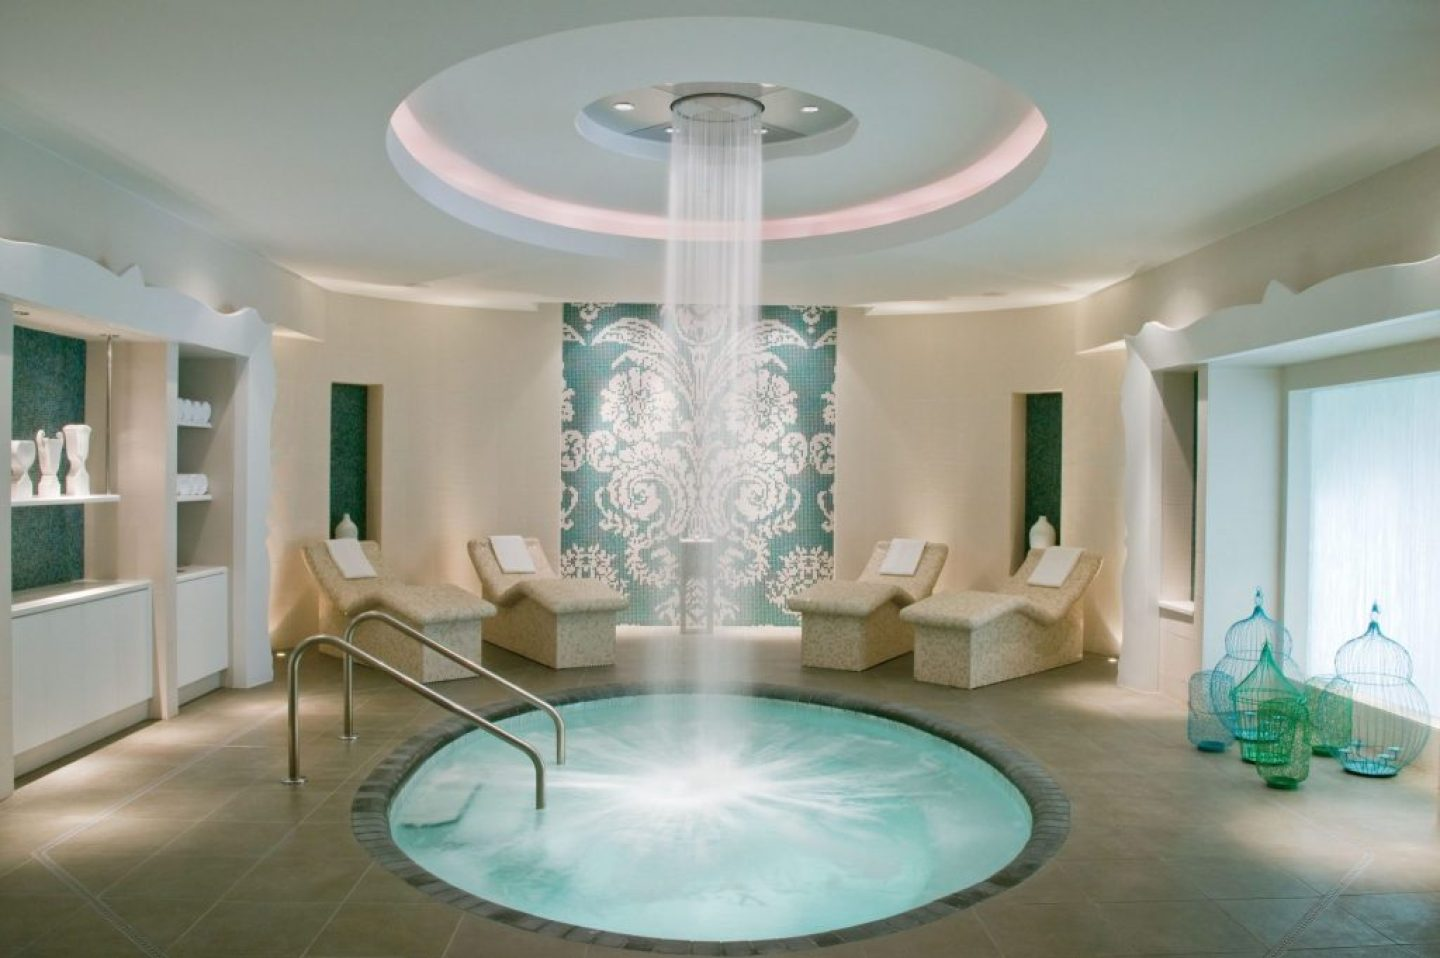 Eau Palm Beach Spa Rainforest